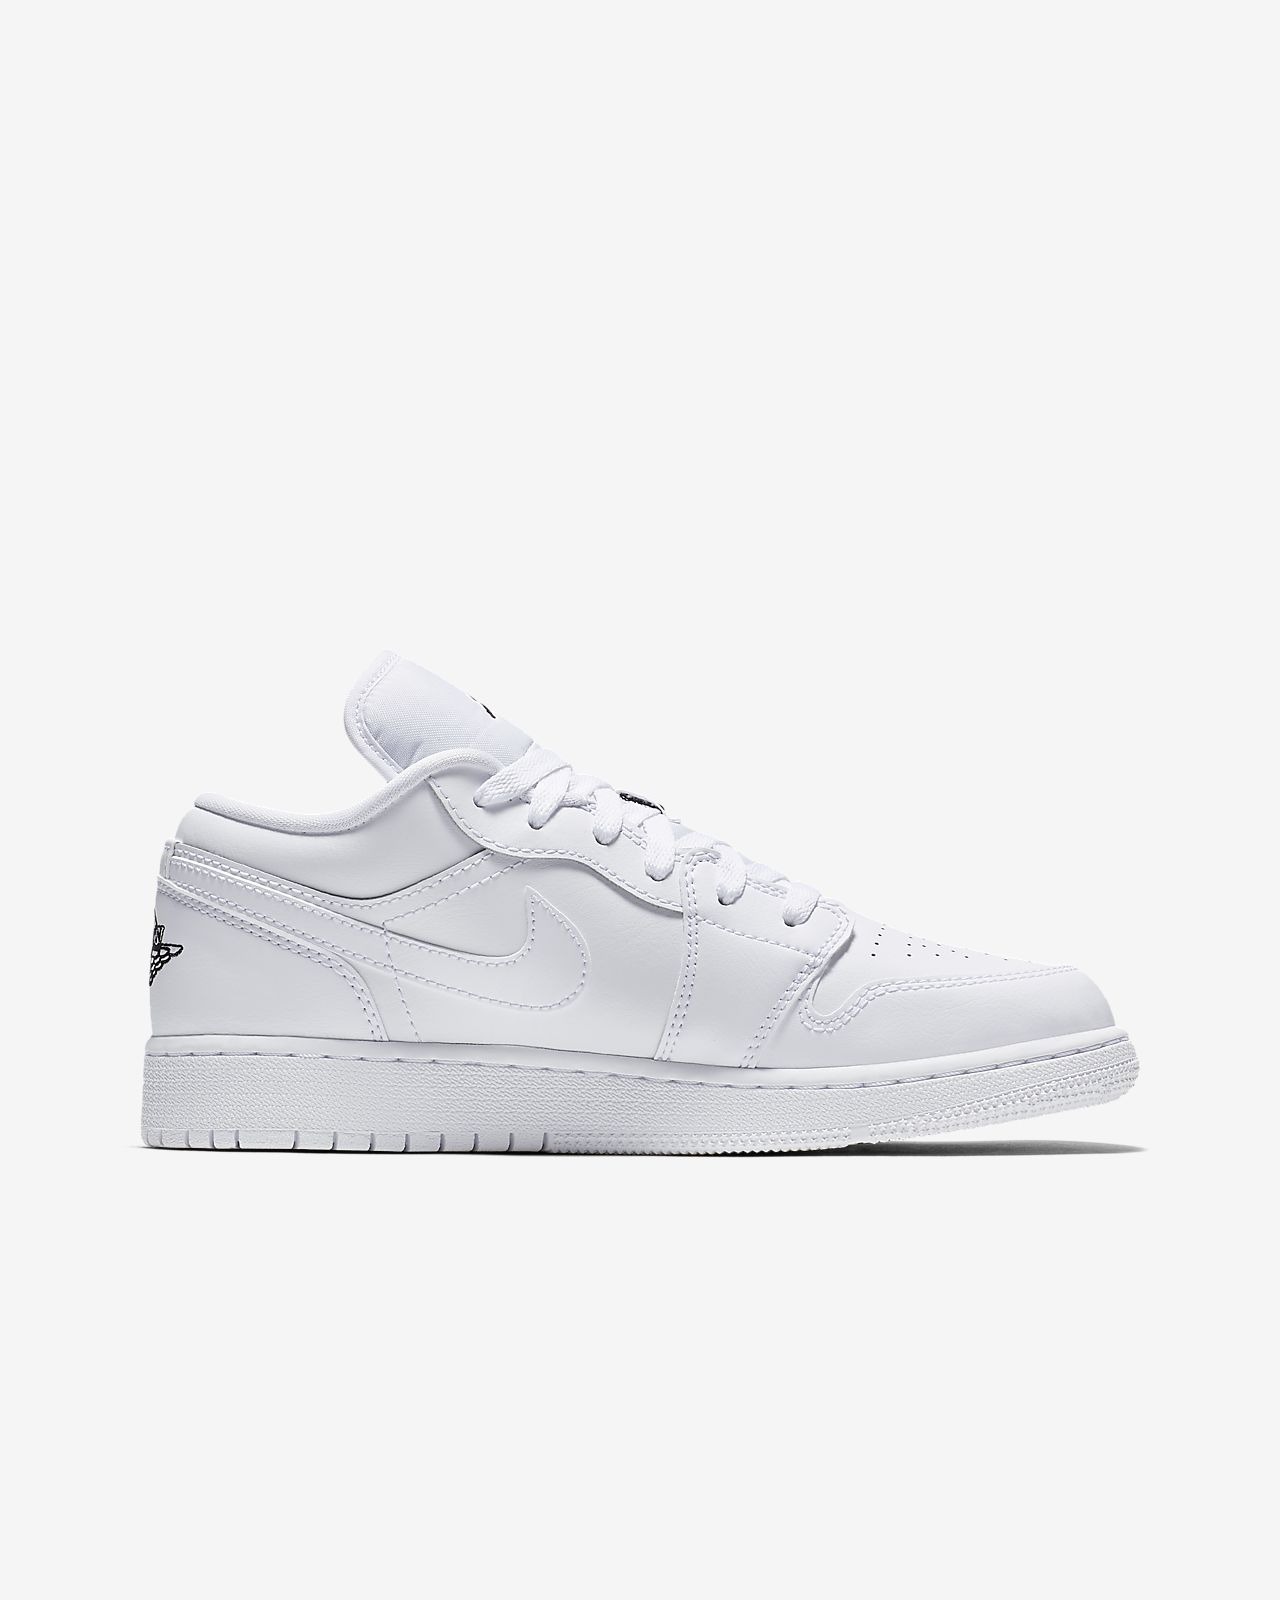 edcdd4102b Air Jordan 1 Low Big Kids' Shoe. Nike.com